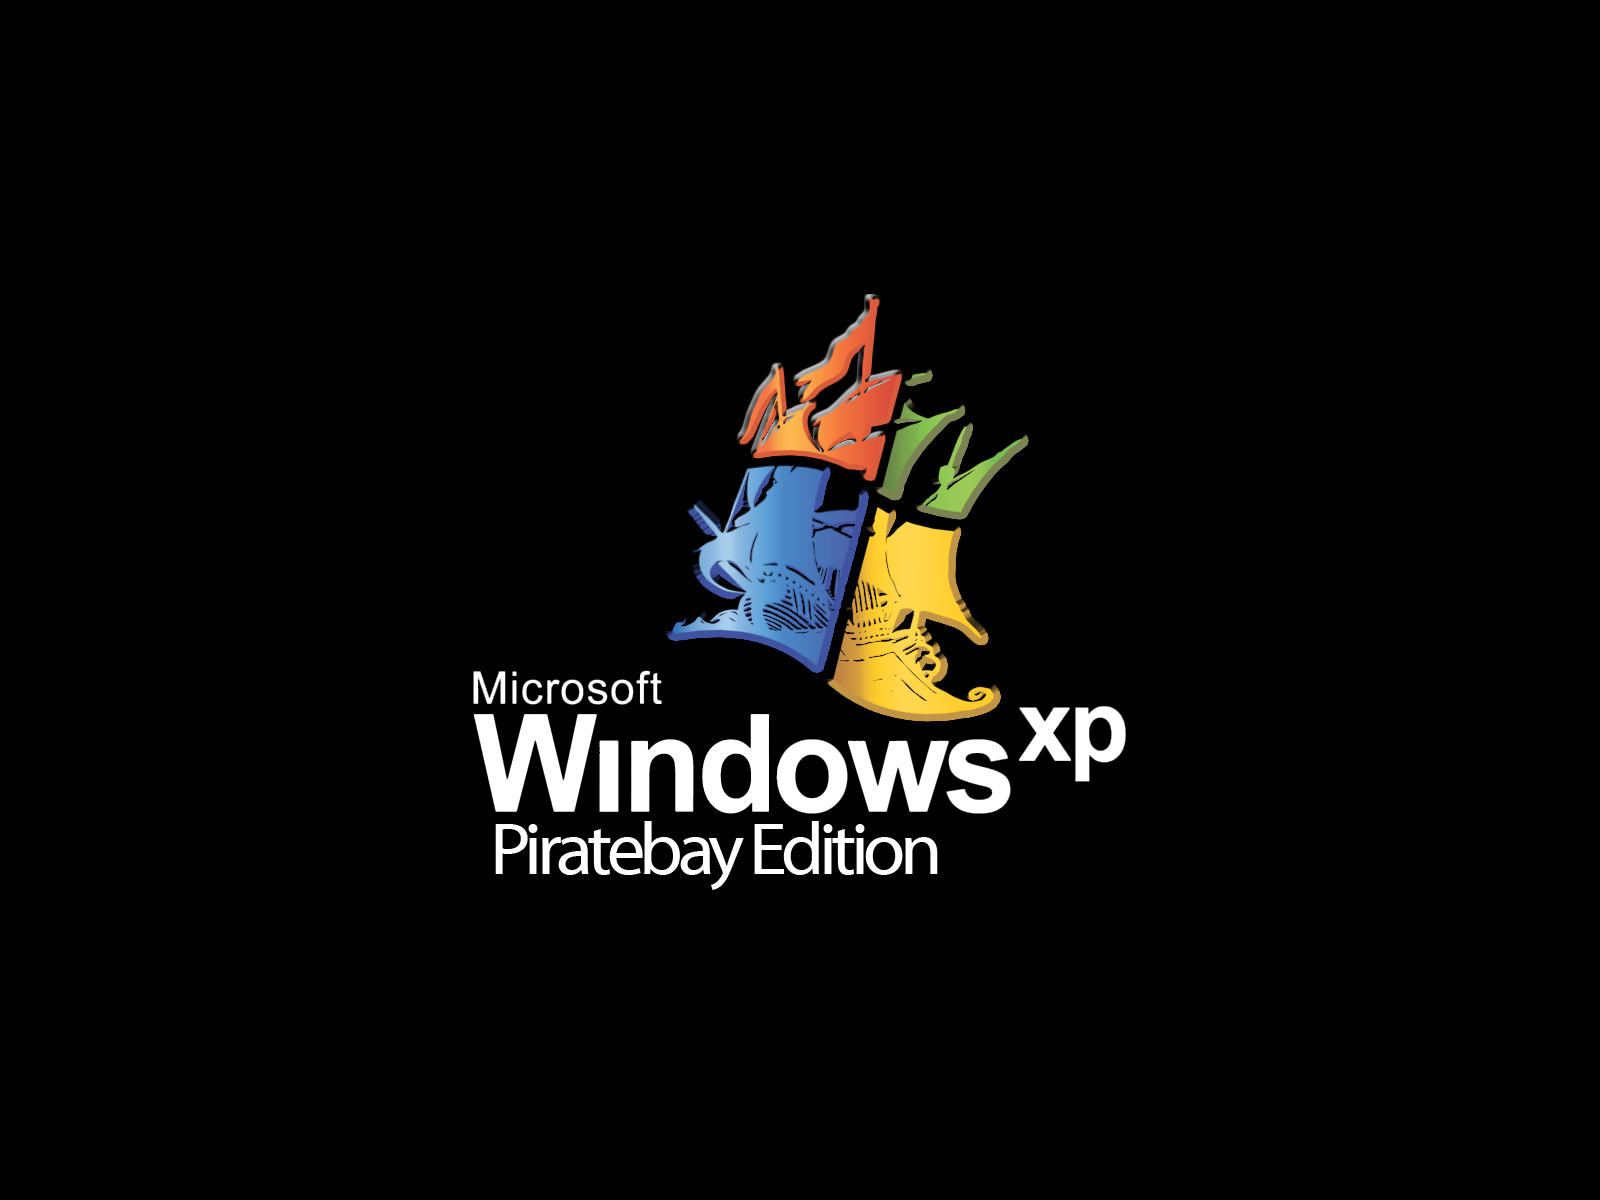 Windows XP Command Line Syntax Technology 365 1600x1200